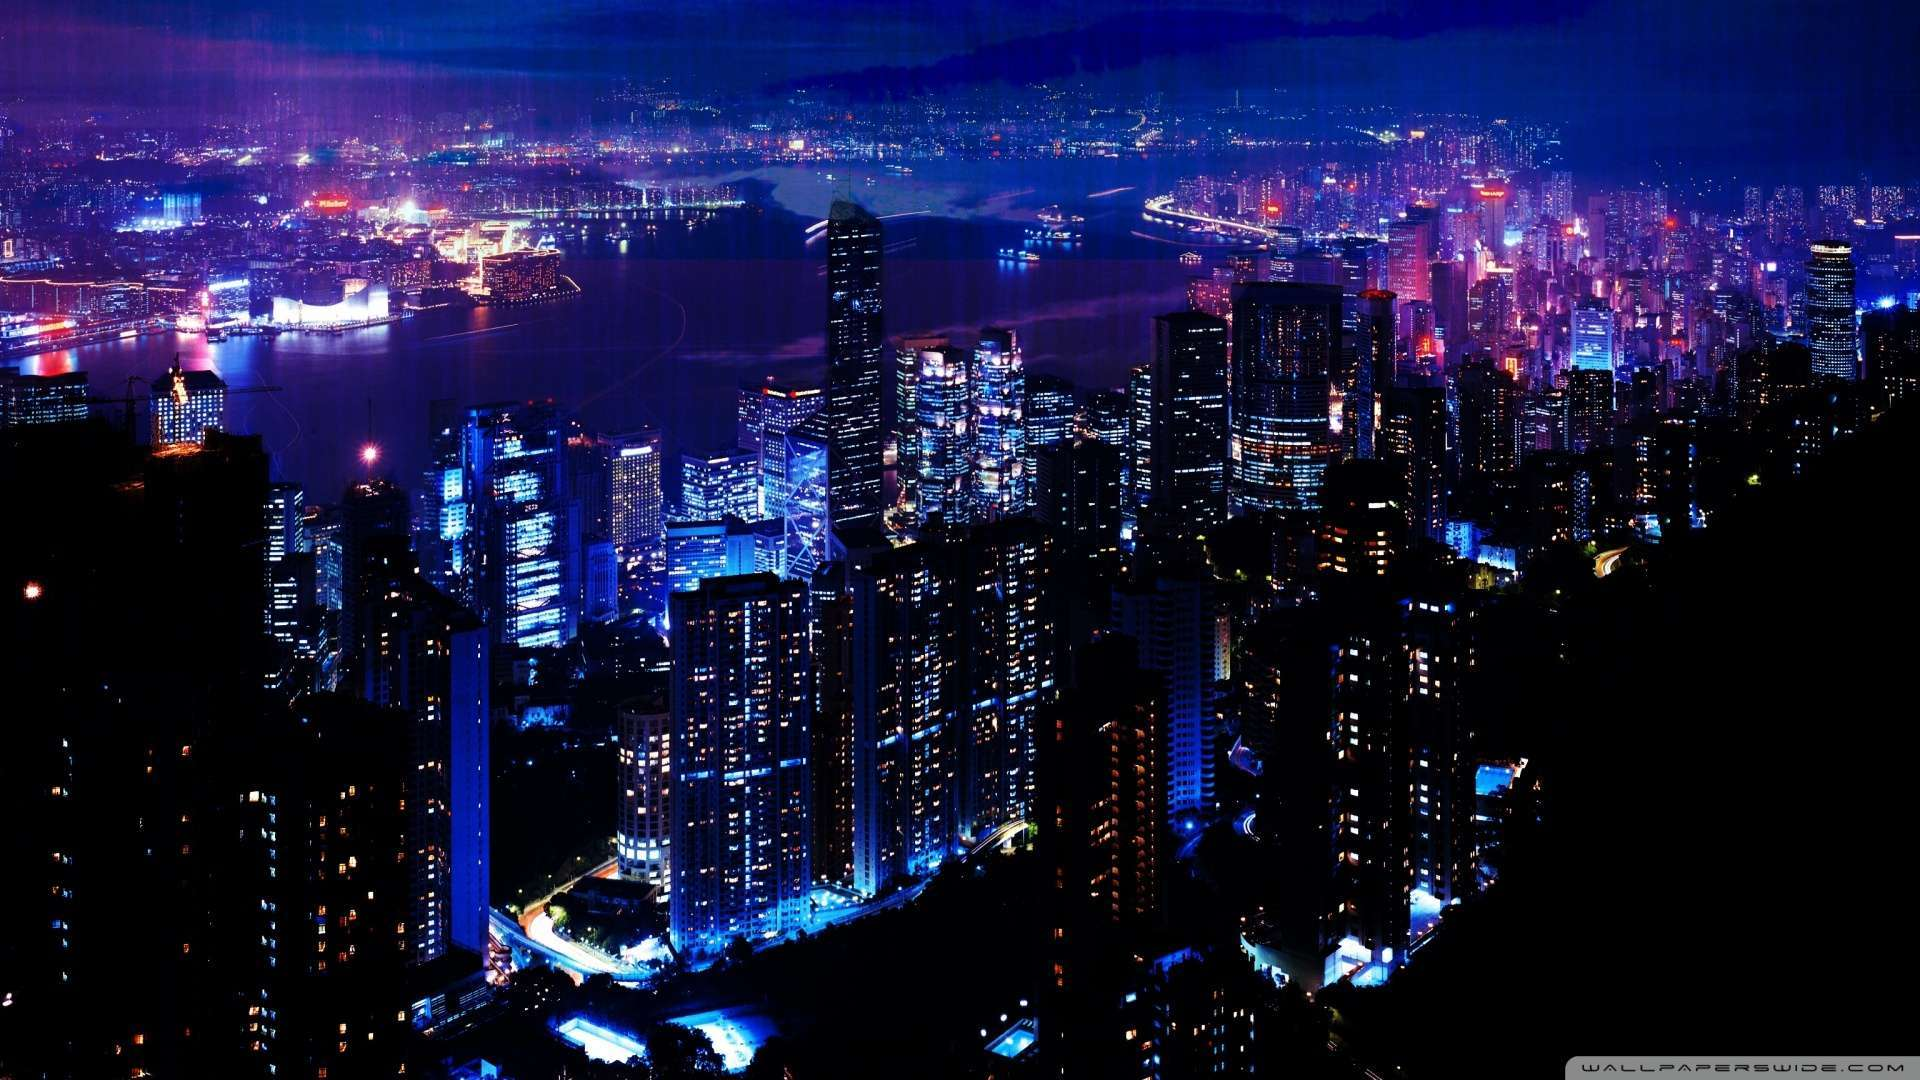 Wallpaper Night City 2 Wallpaper 1080p HD Upload at January 4 2014 1920x1080